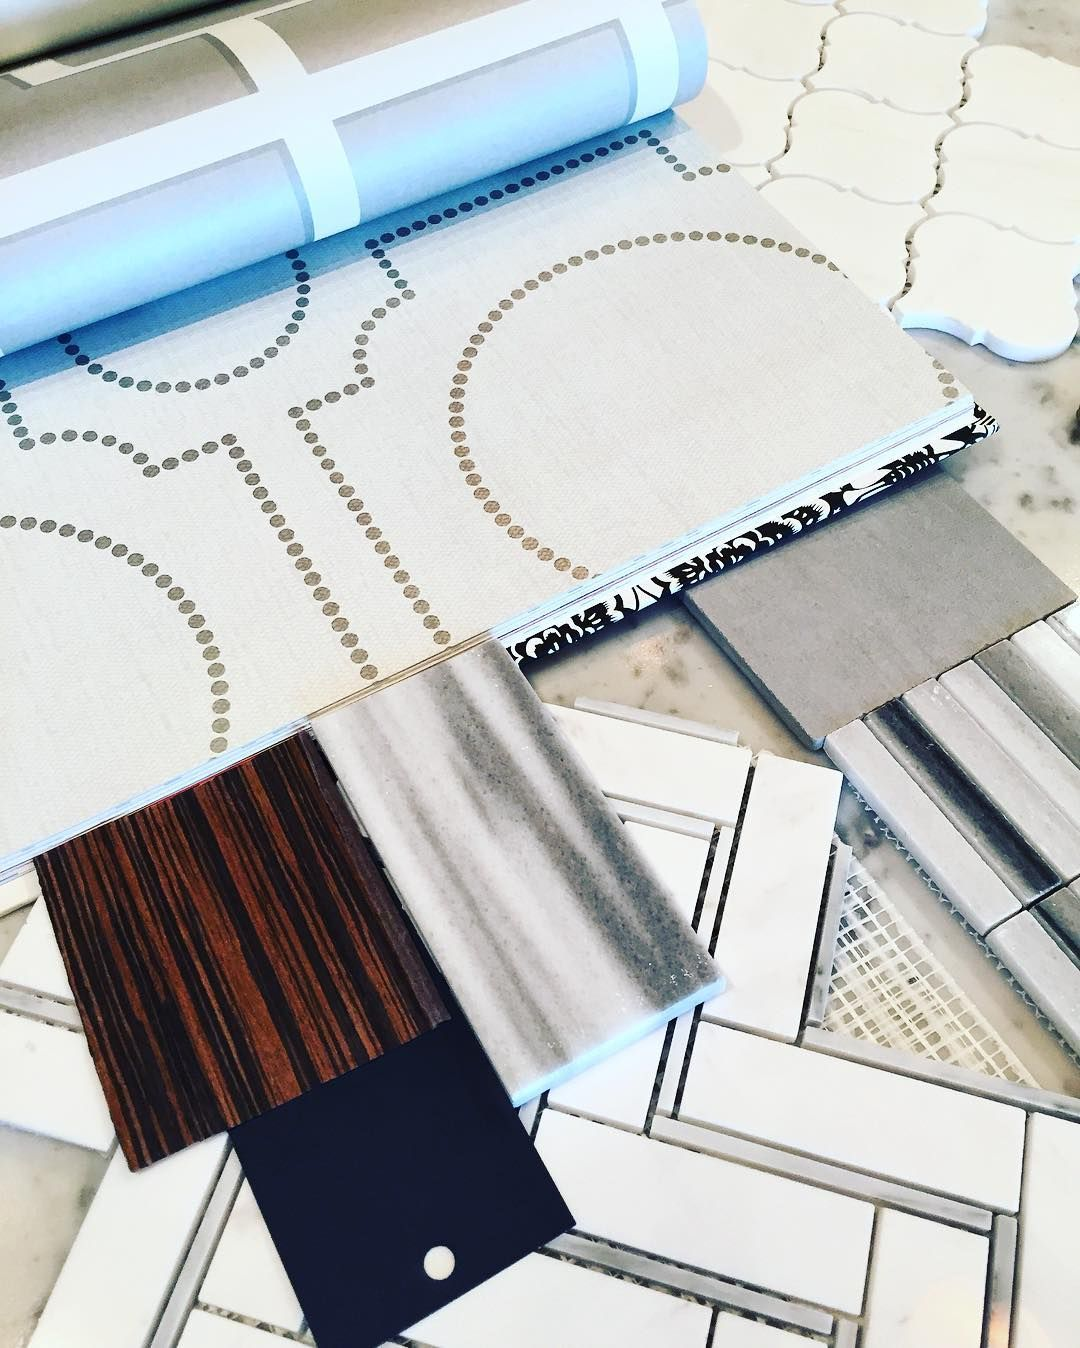 Shades of G R E Y ....or GRAY....  however you put it... We're LOVING this project. ....#instalike #instadesign #interiordesign #design #estudio #interiors #bathroom #evelyneshundesign #richviewproject #torontorealestate #customhomes #designprocess #designerfind #designinterior #instacool #instacool #instadesign #tile #instatile #wallpaper by evelyndesigner